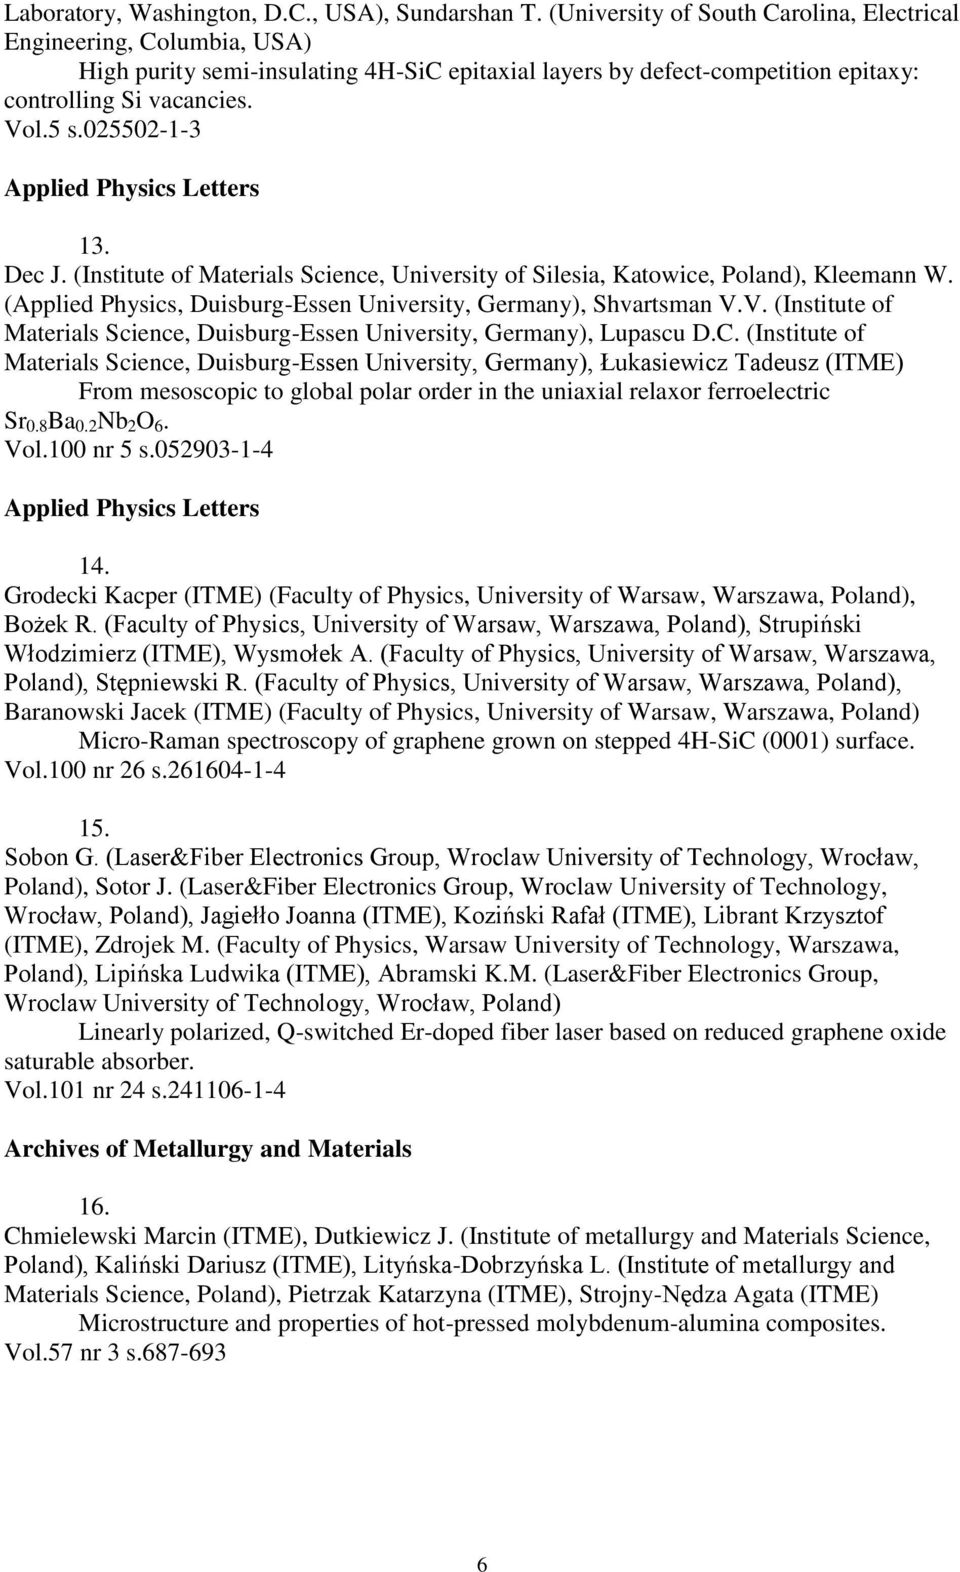 025502-1-3 Applied Physics Letters 13. Dec J. (Institute of Materials Science, University of Silesia, Katowice, Poland), Kleemann W.